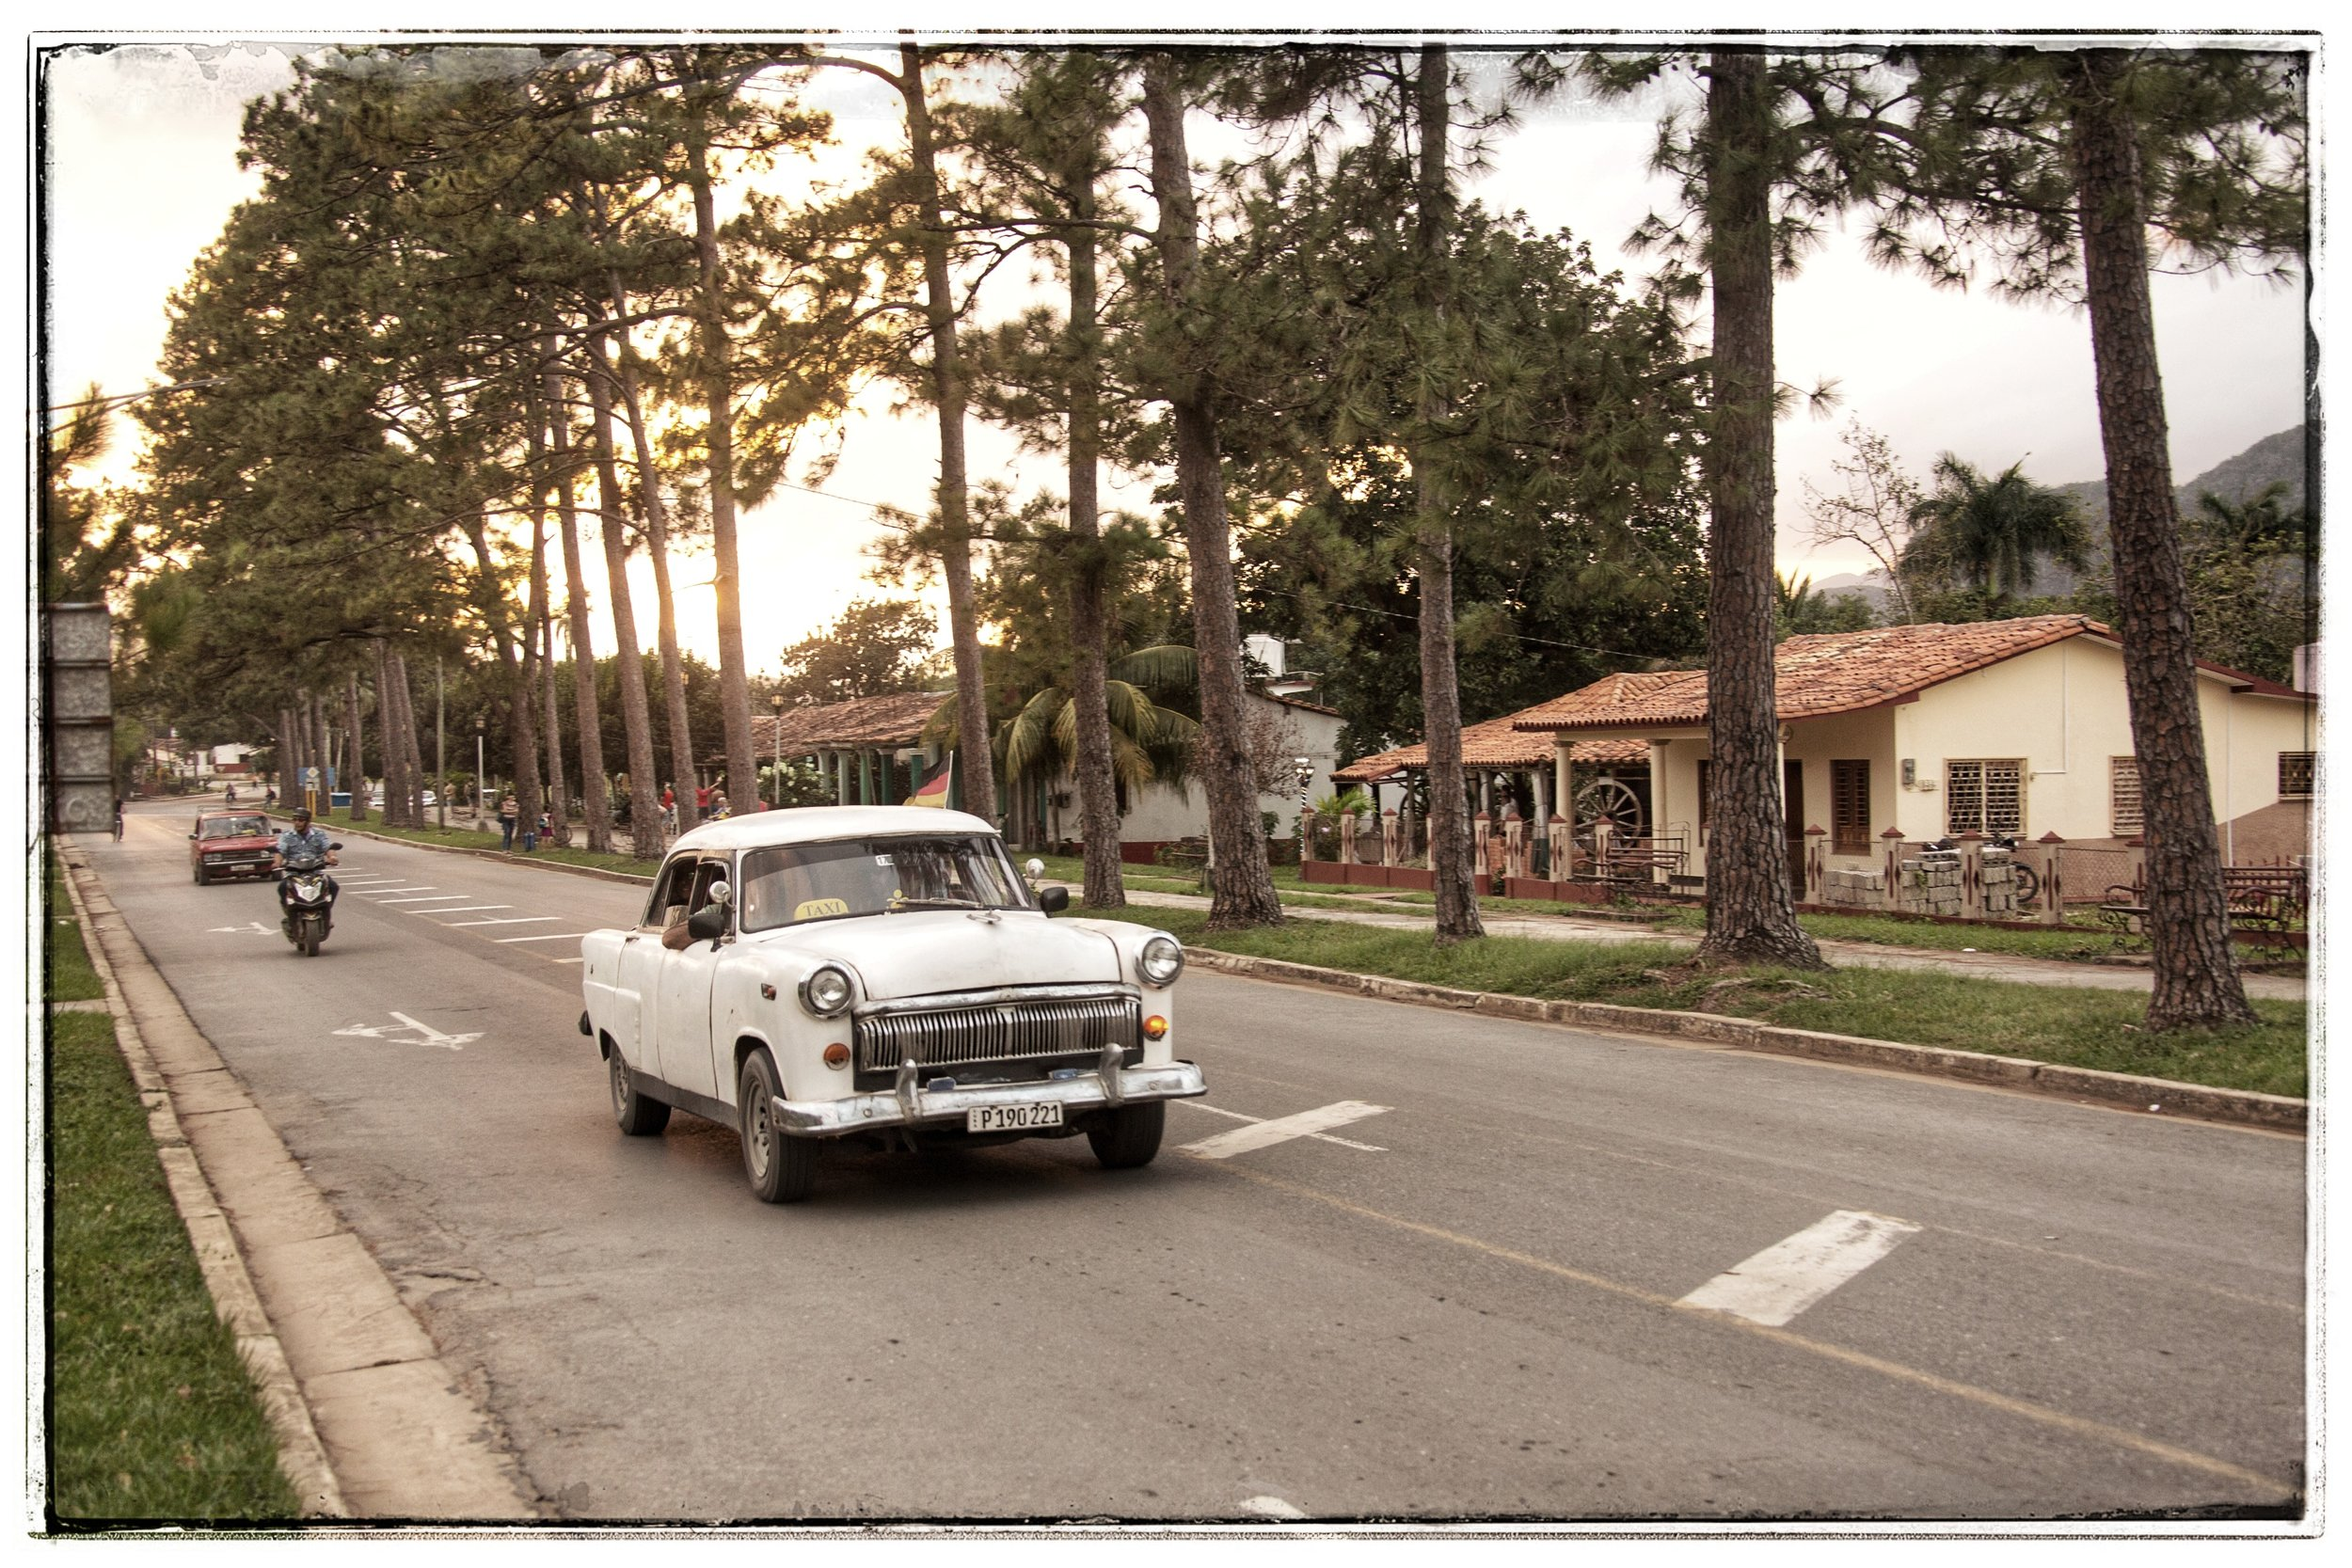 The citizens of VInales are much wealthier than most due to heavy tourism.